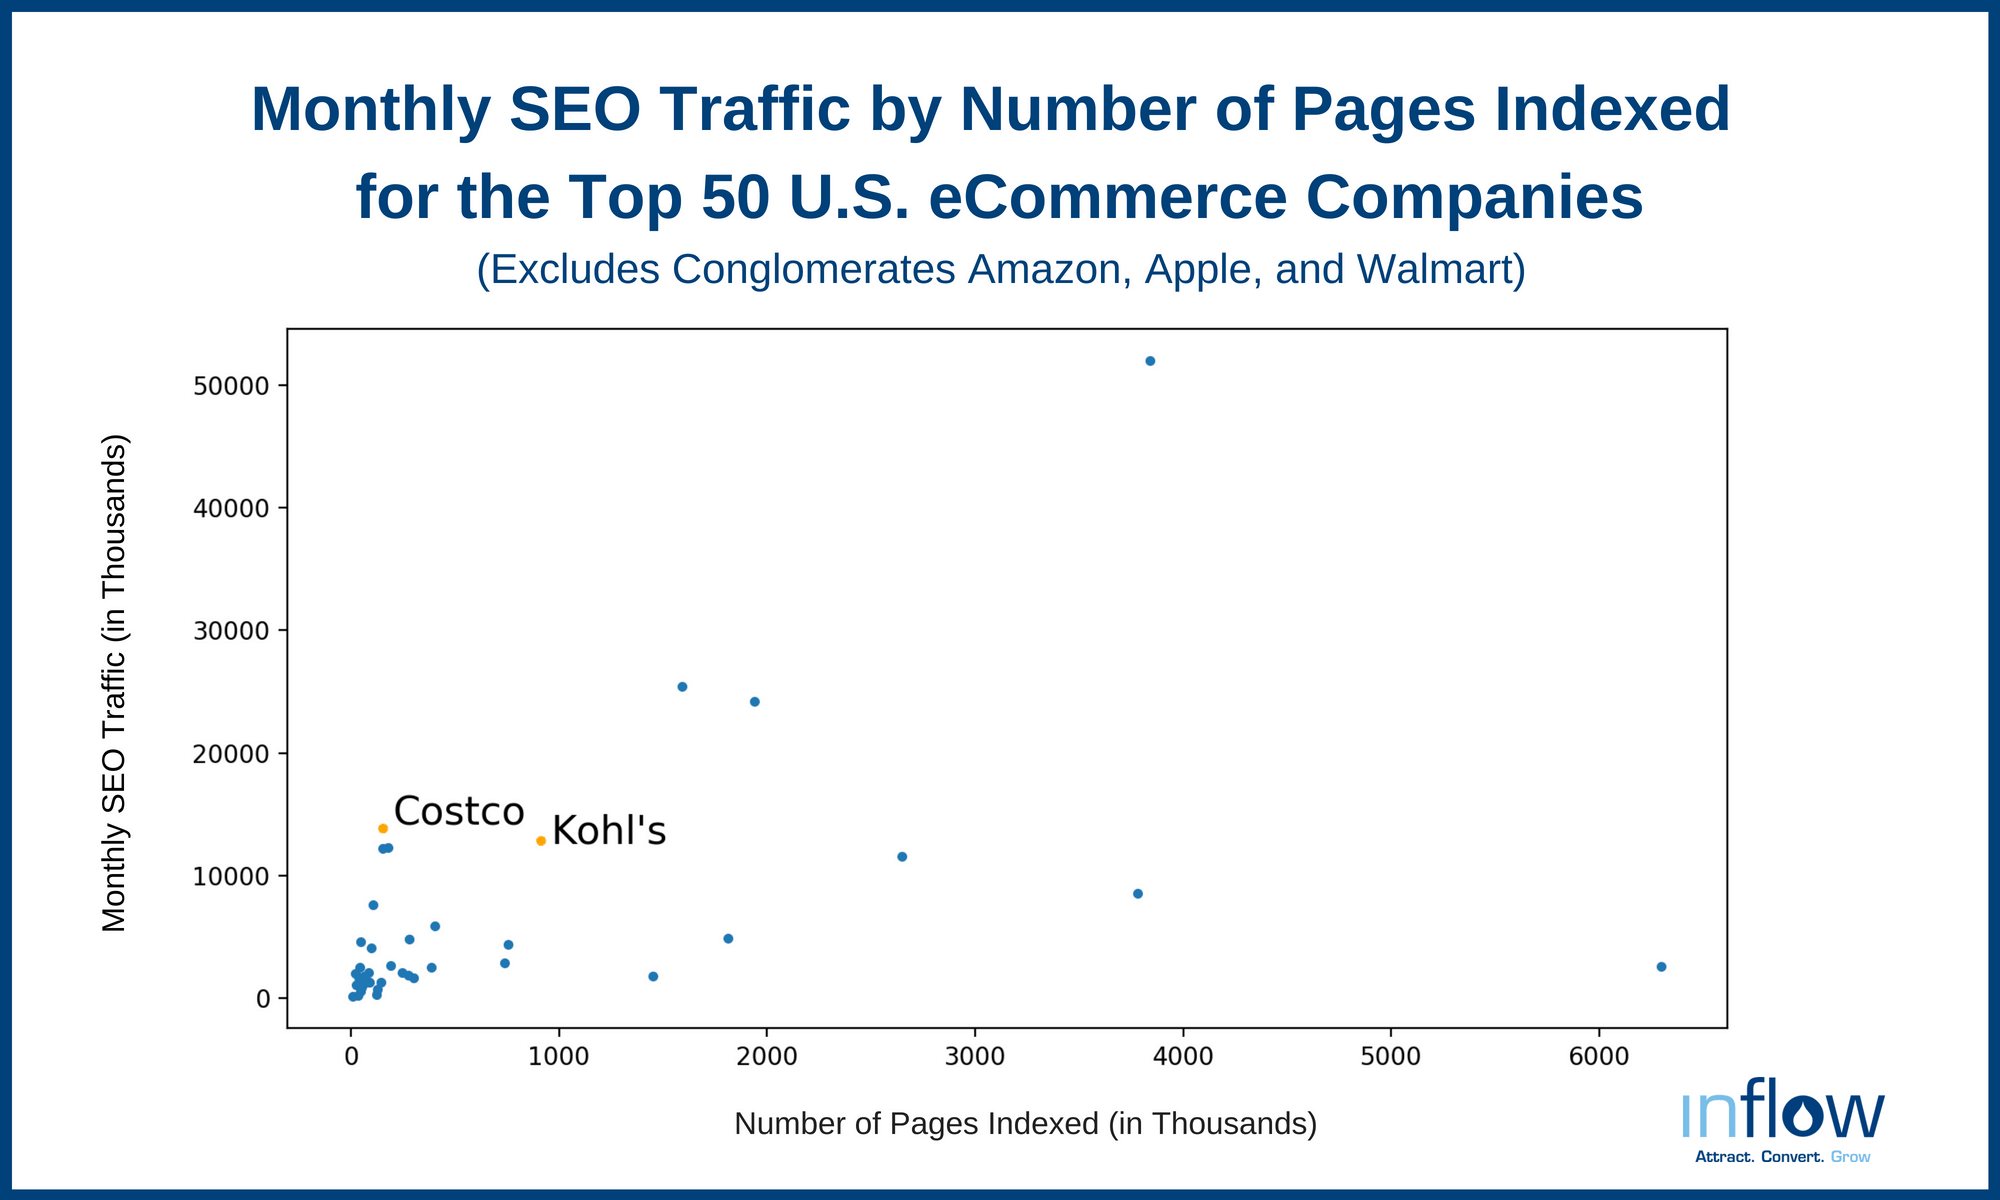 Monthly SEO Traffic by Number of Pages Indexed for the Top 50 U.S. eCommerce Companies